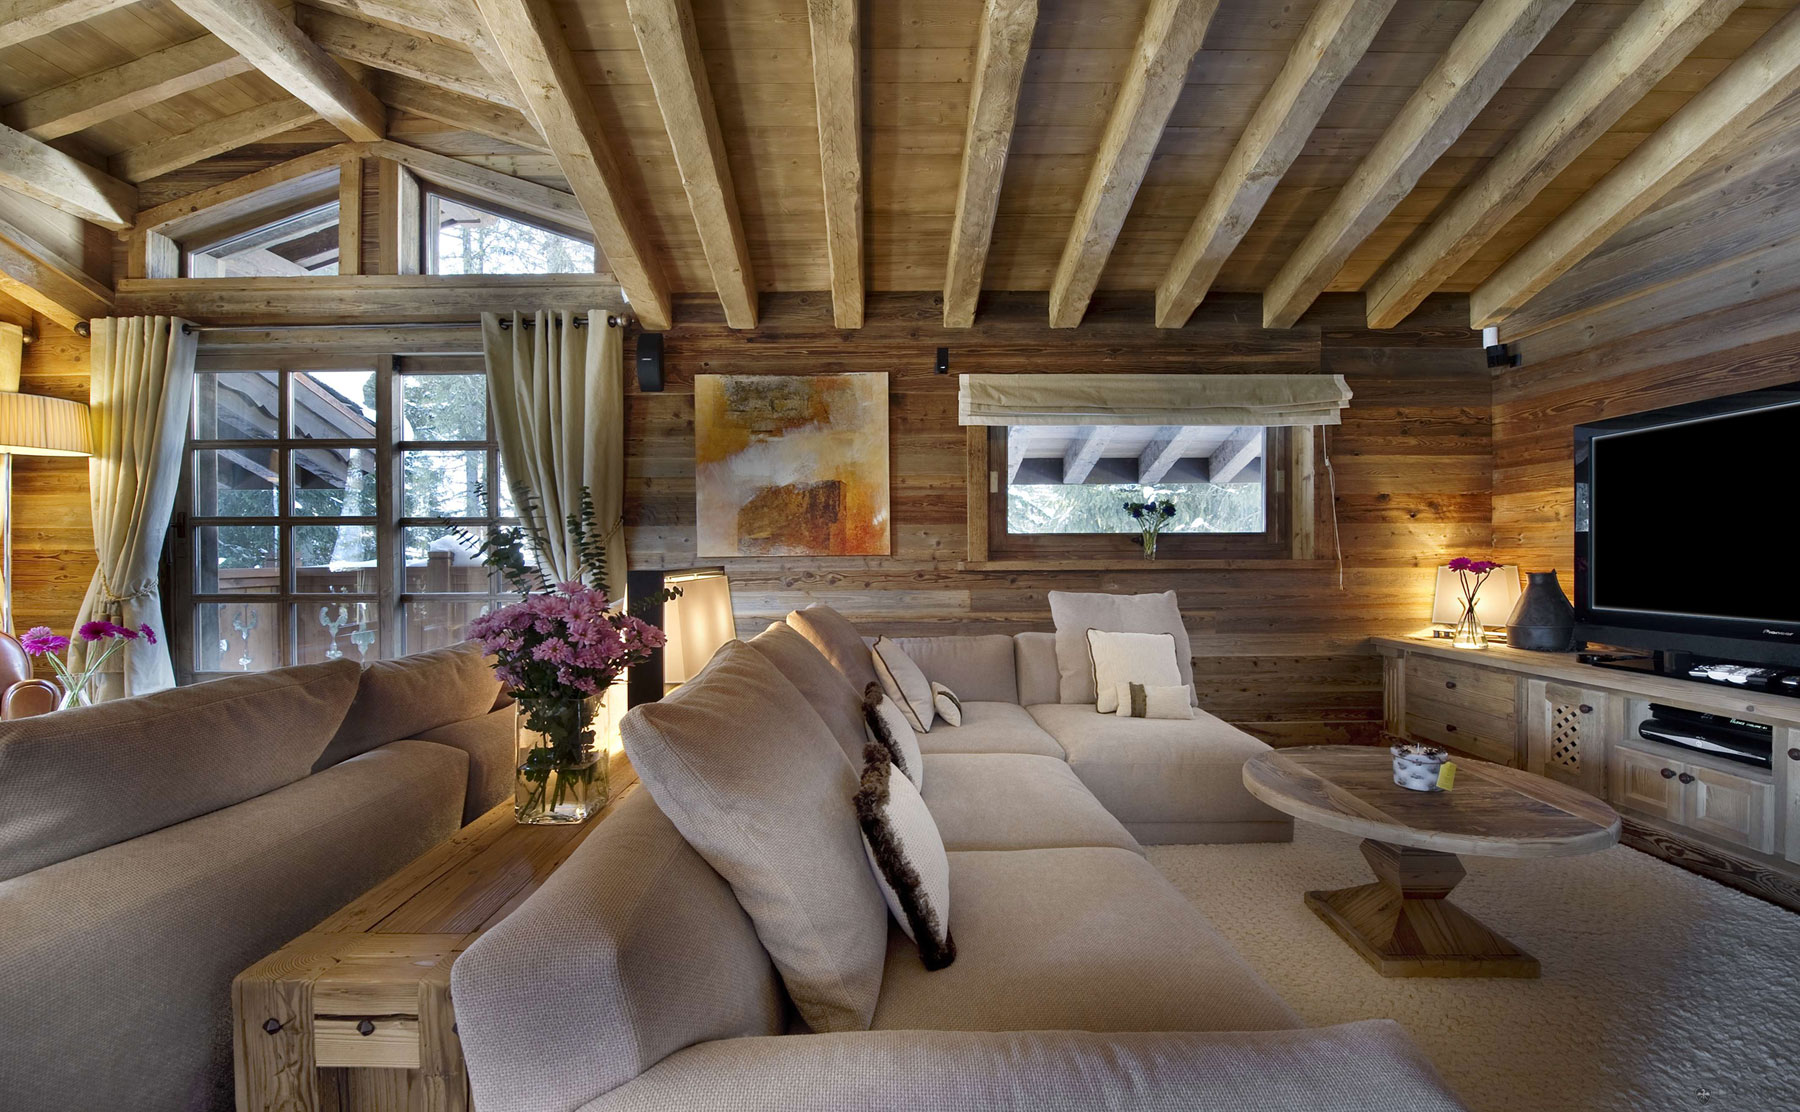 Chalet Les Gentianes 1850 in Courchevel, the French Alps (4)